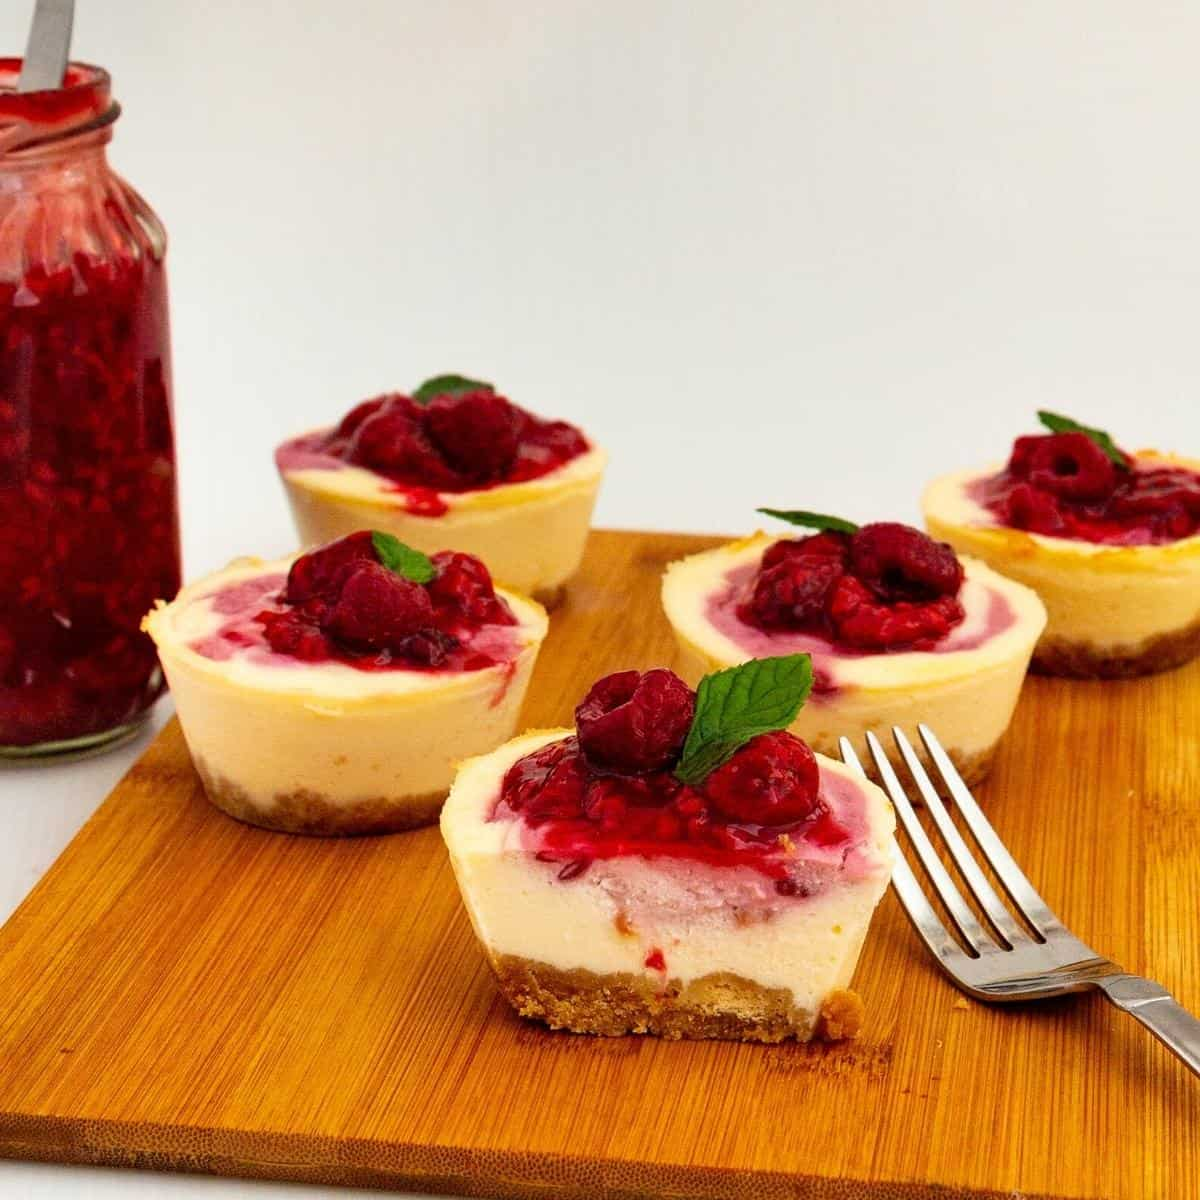 Sliced mini cheesecakes topped with raspberries.